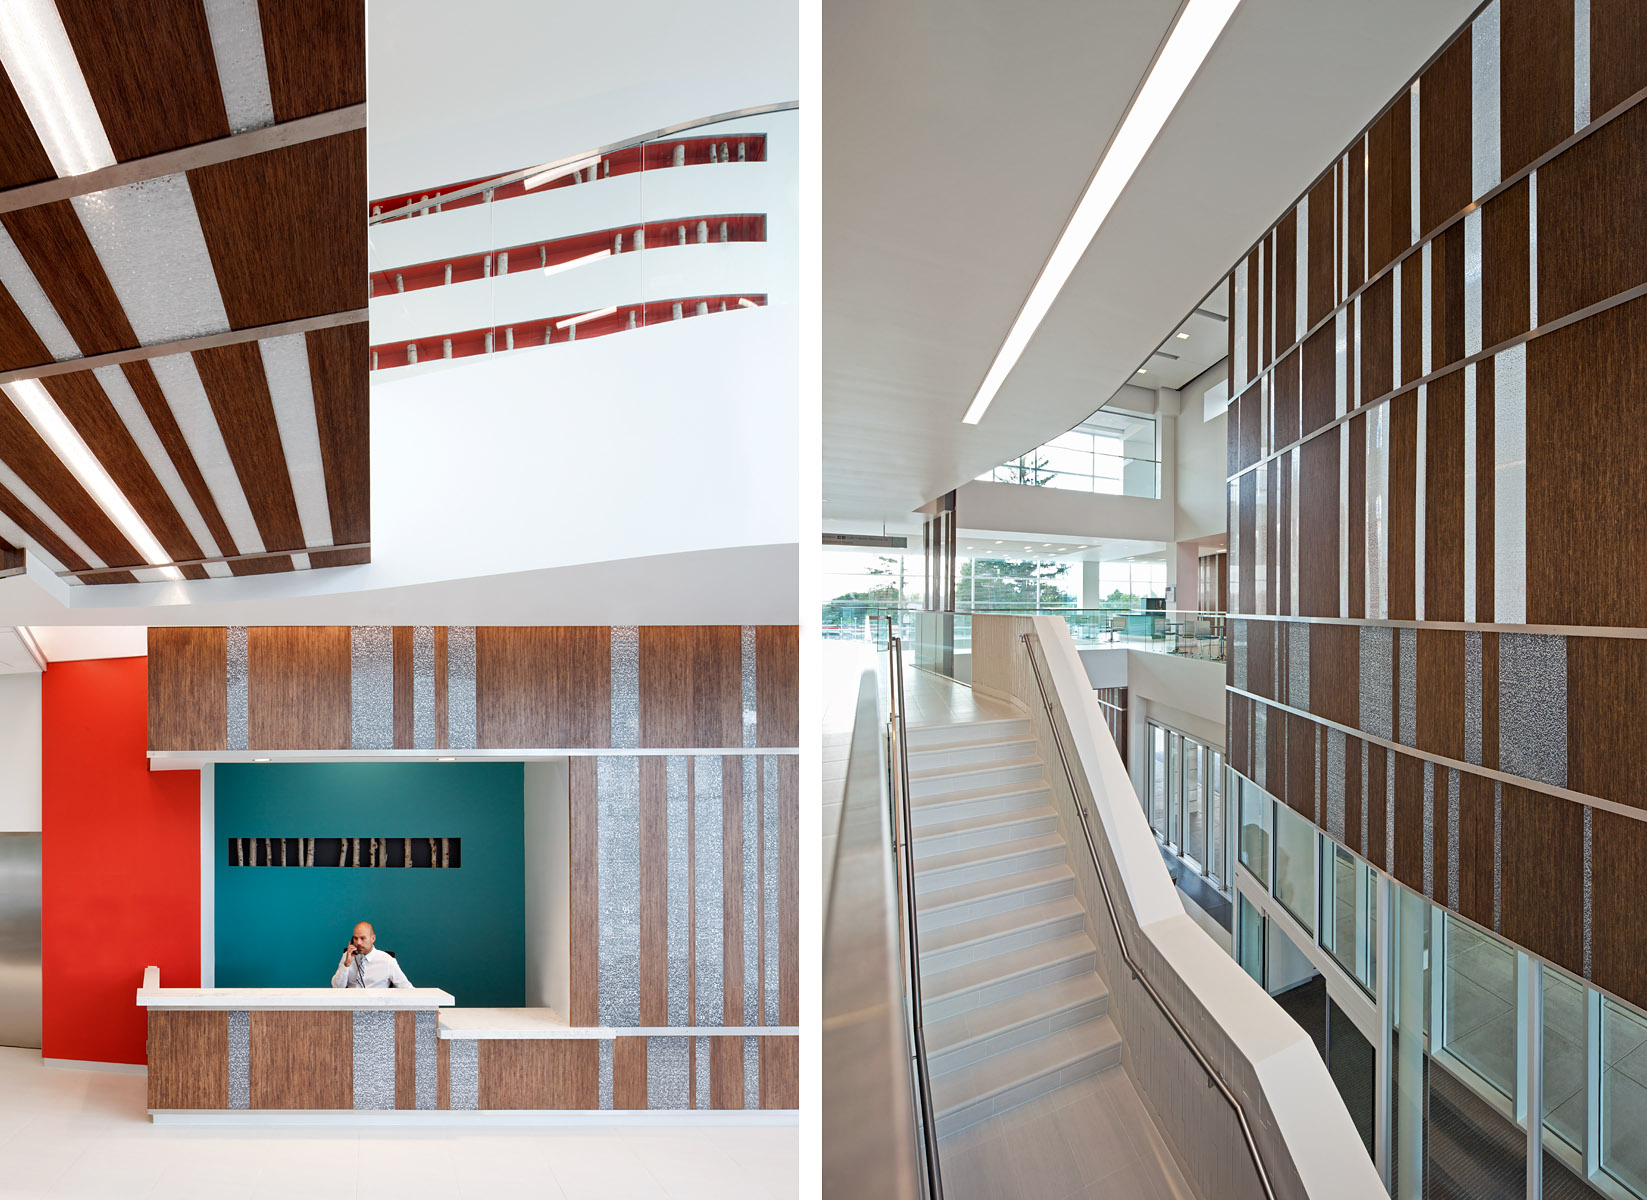 Dale & Frances Hughes Cancer CenterPocono Medical CenterEast Stroudsburg, PAEwingColeAIA Philadelphia Honor AwardContract DesignHealthcare Environment Award + Magazine Cover StoryDE Valley Association of Structural Engineers (DVASE)Outstanding Project AwardExcellence in Structural EngineeringEngineering News RecordMid-Atlantic Best Project – Award of MeritInterior Design Magazine AwardBest of the Year - Small Healthcare